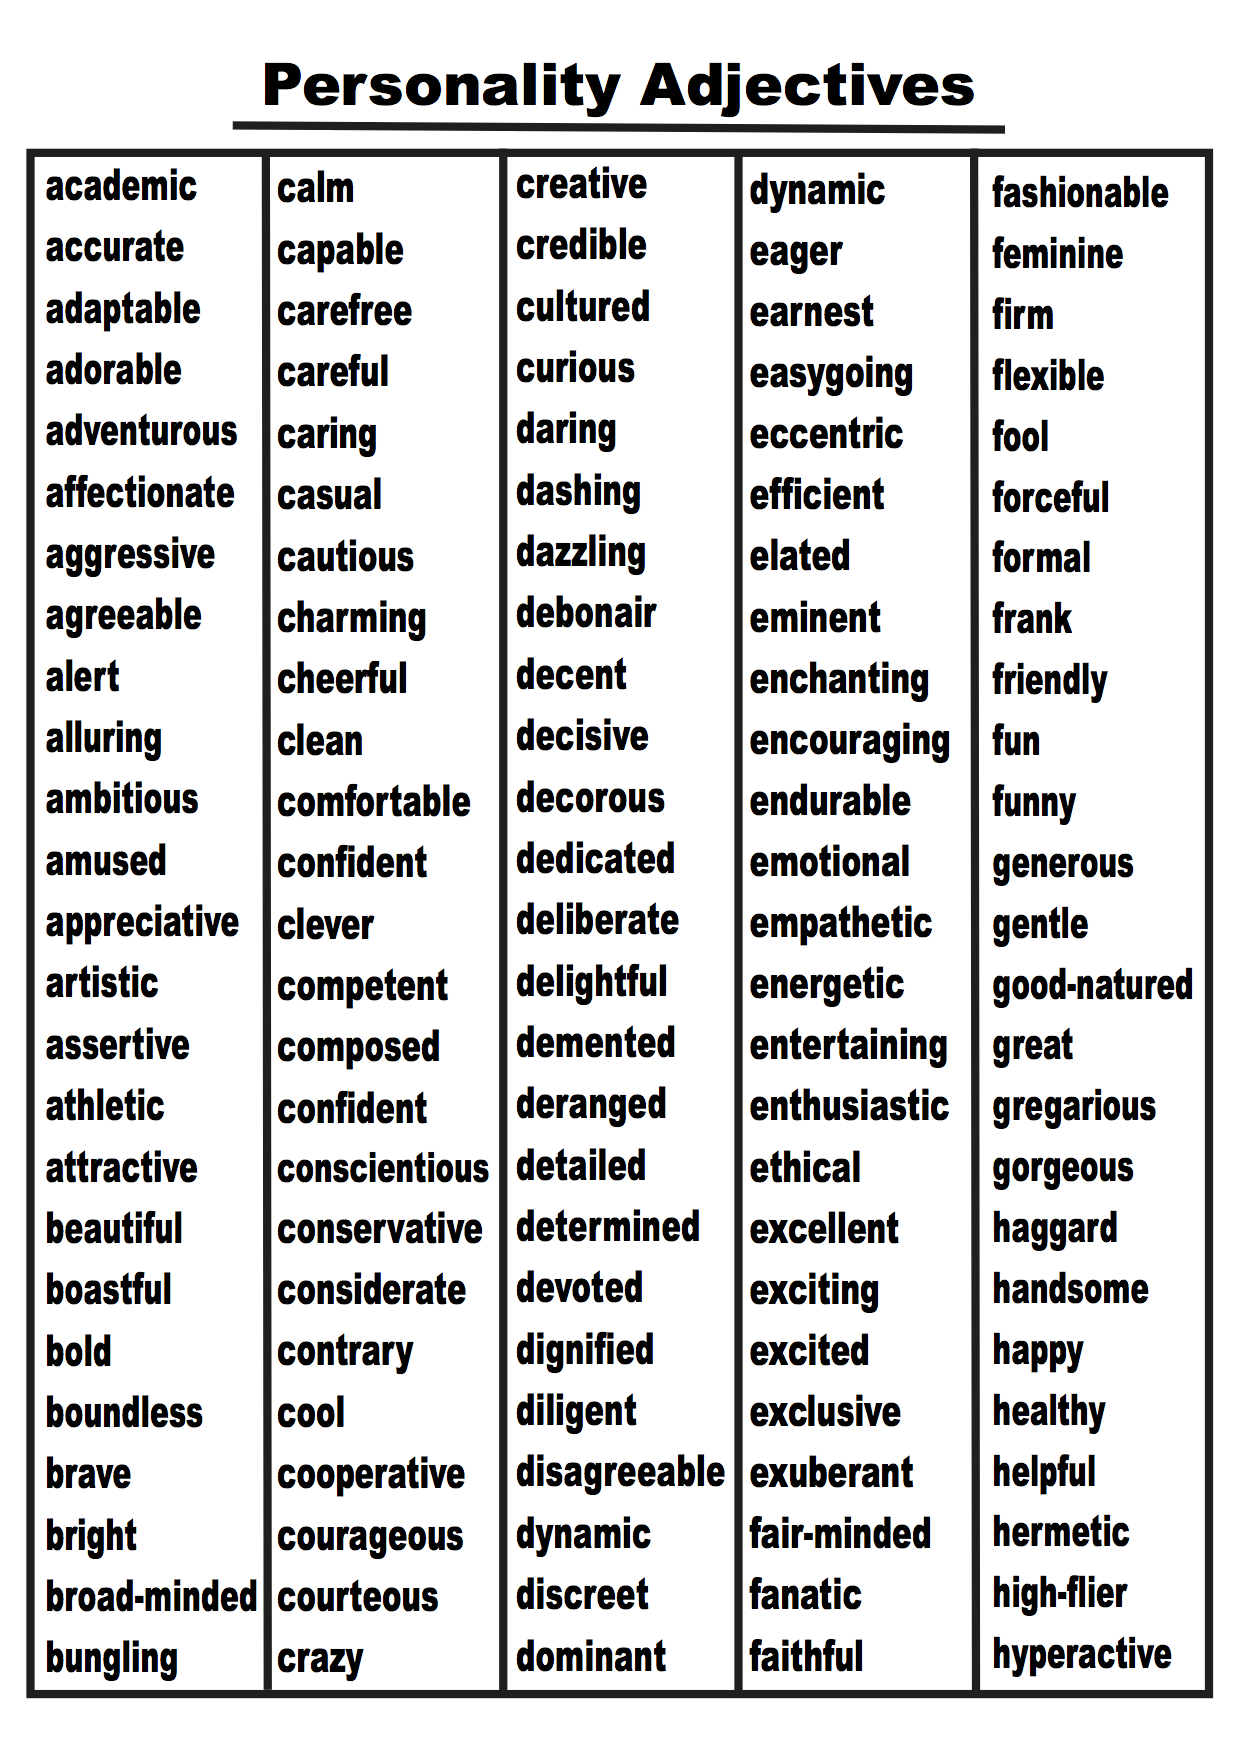 a classroom ready 300 word personality adjectives list a classroom ready 300 word personality adjectives list print out an a3 version and